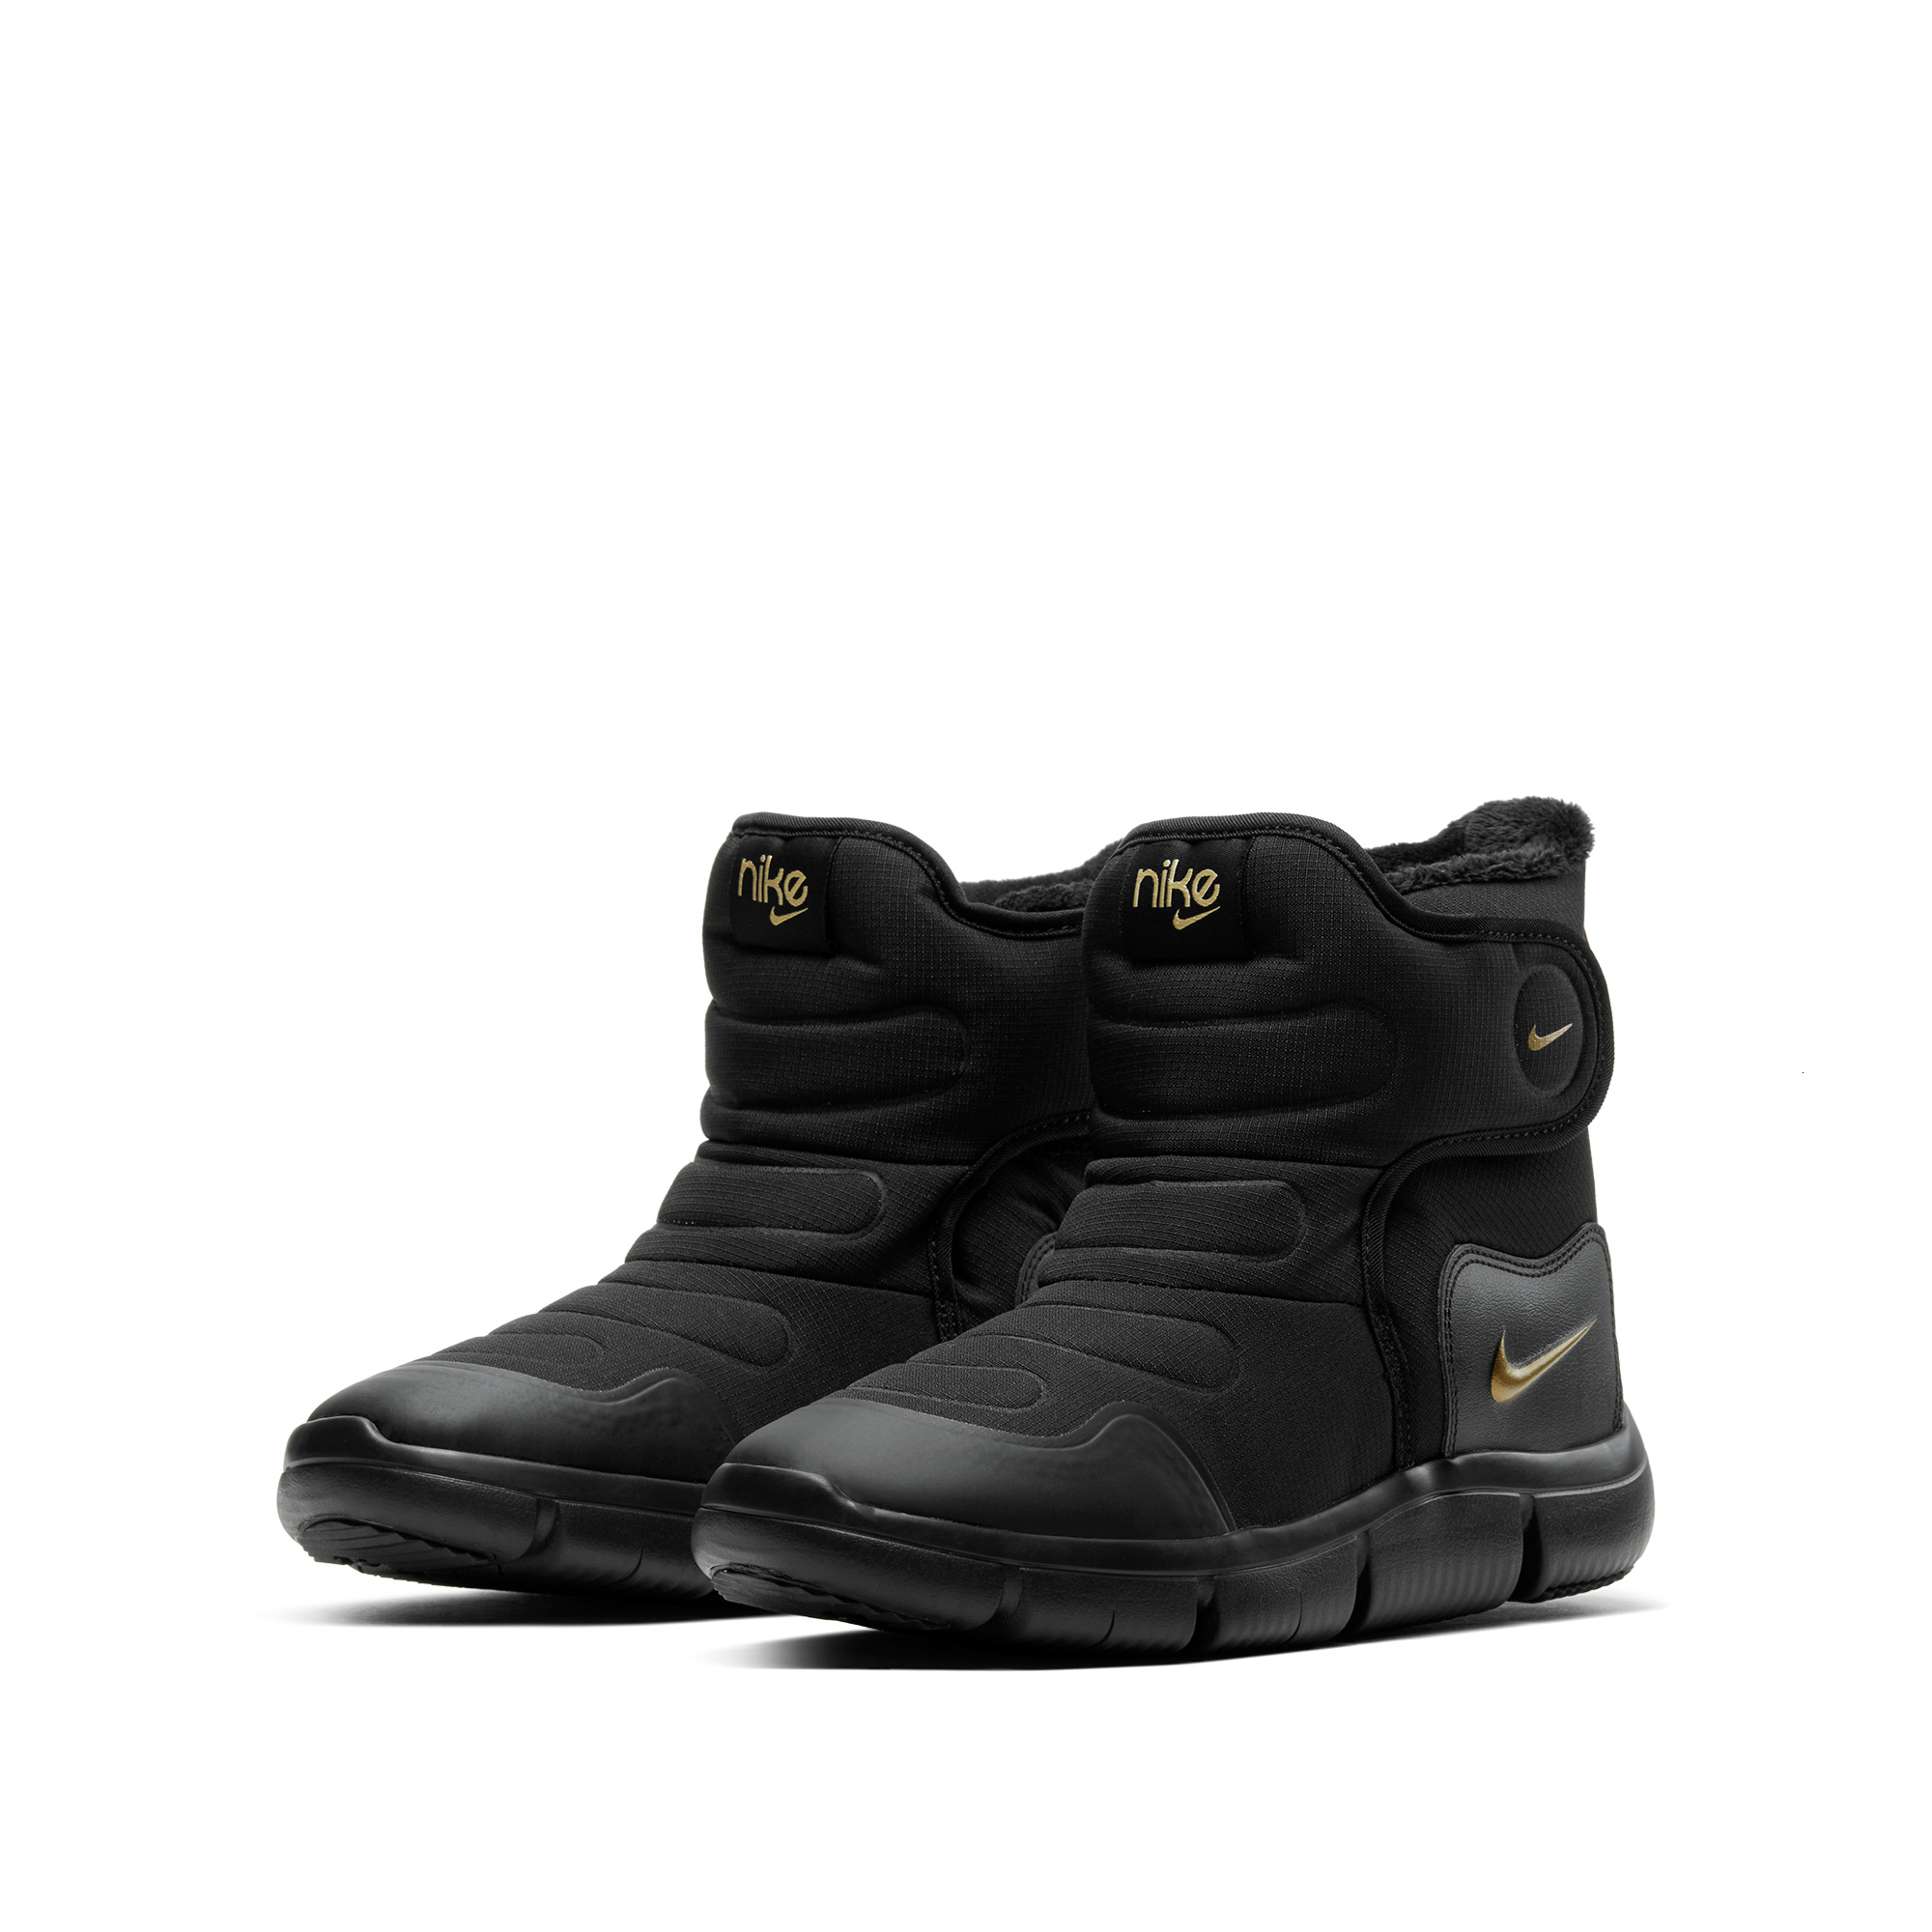 NIKE NOVICE BOOT (GS) New Arrival